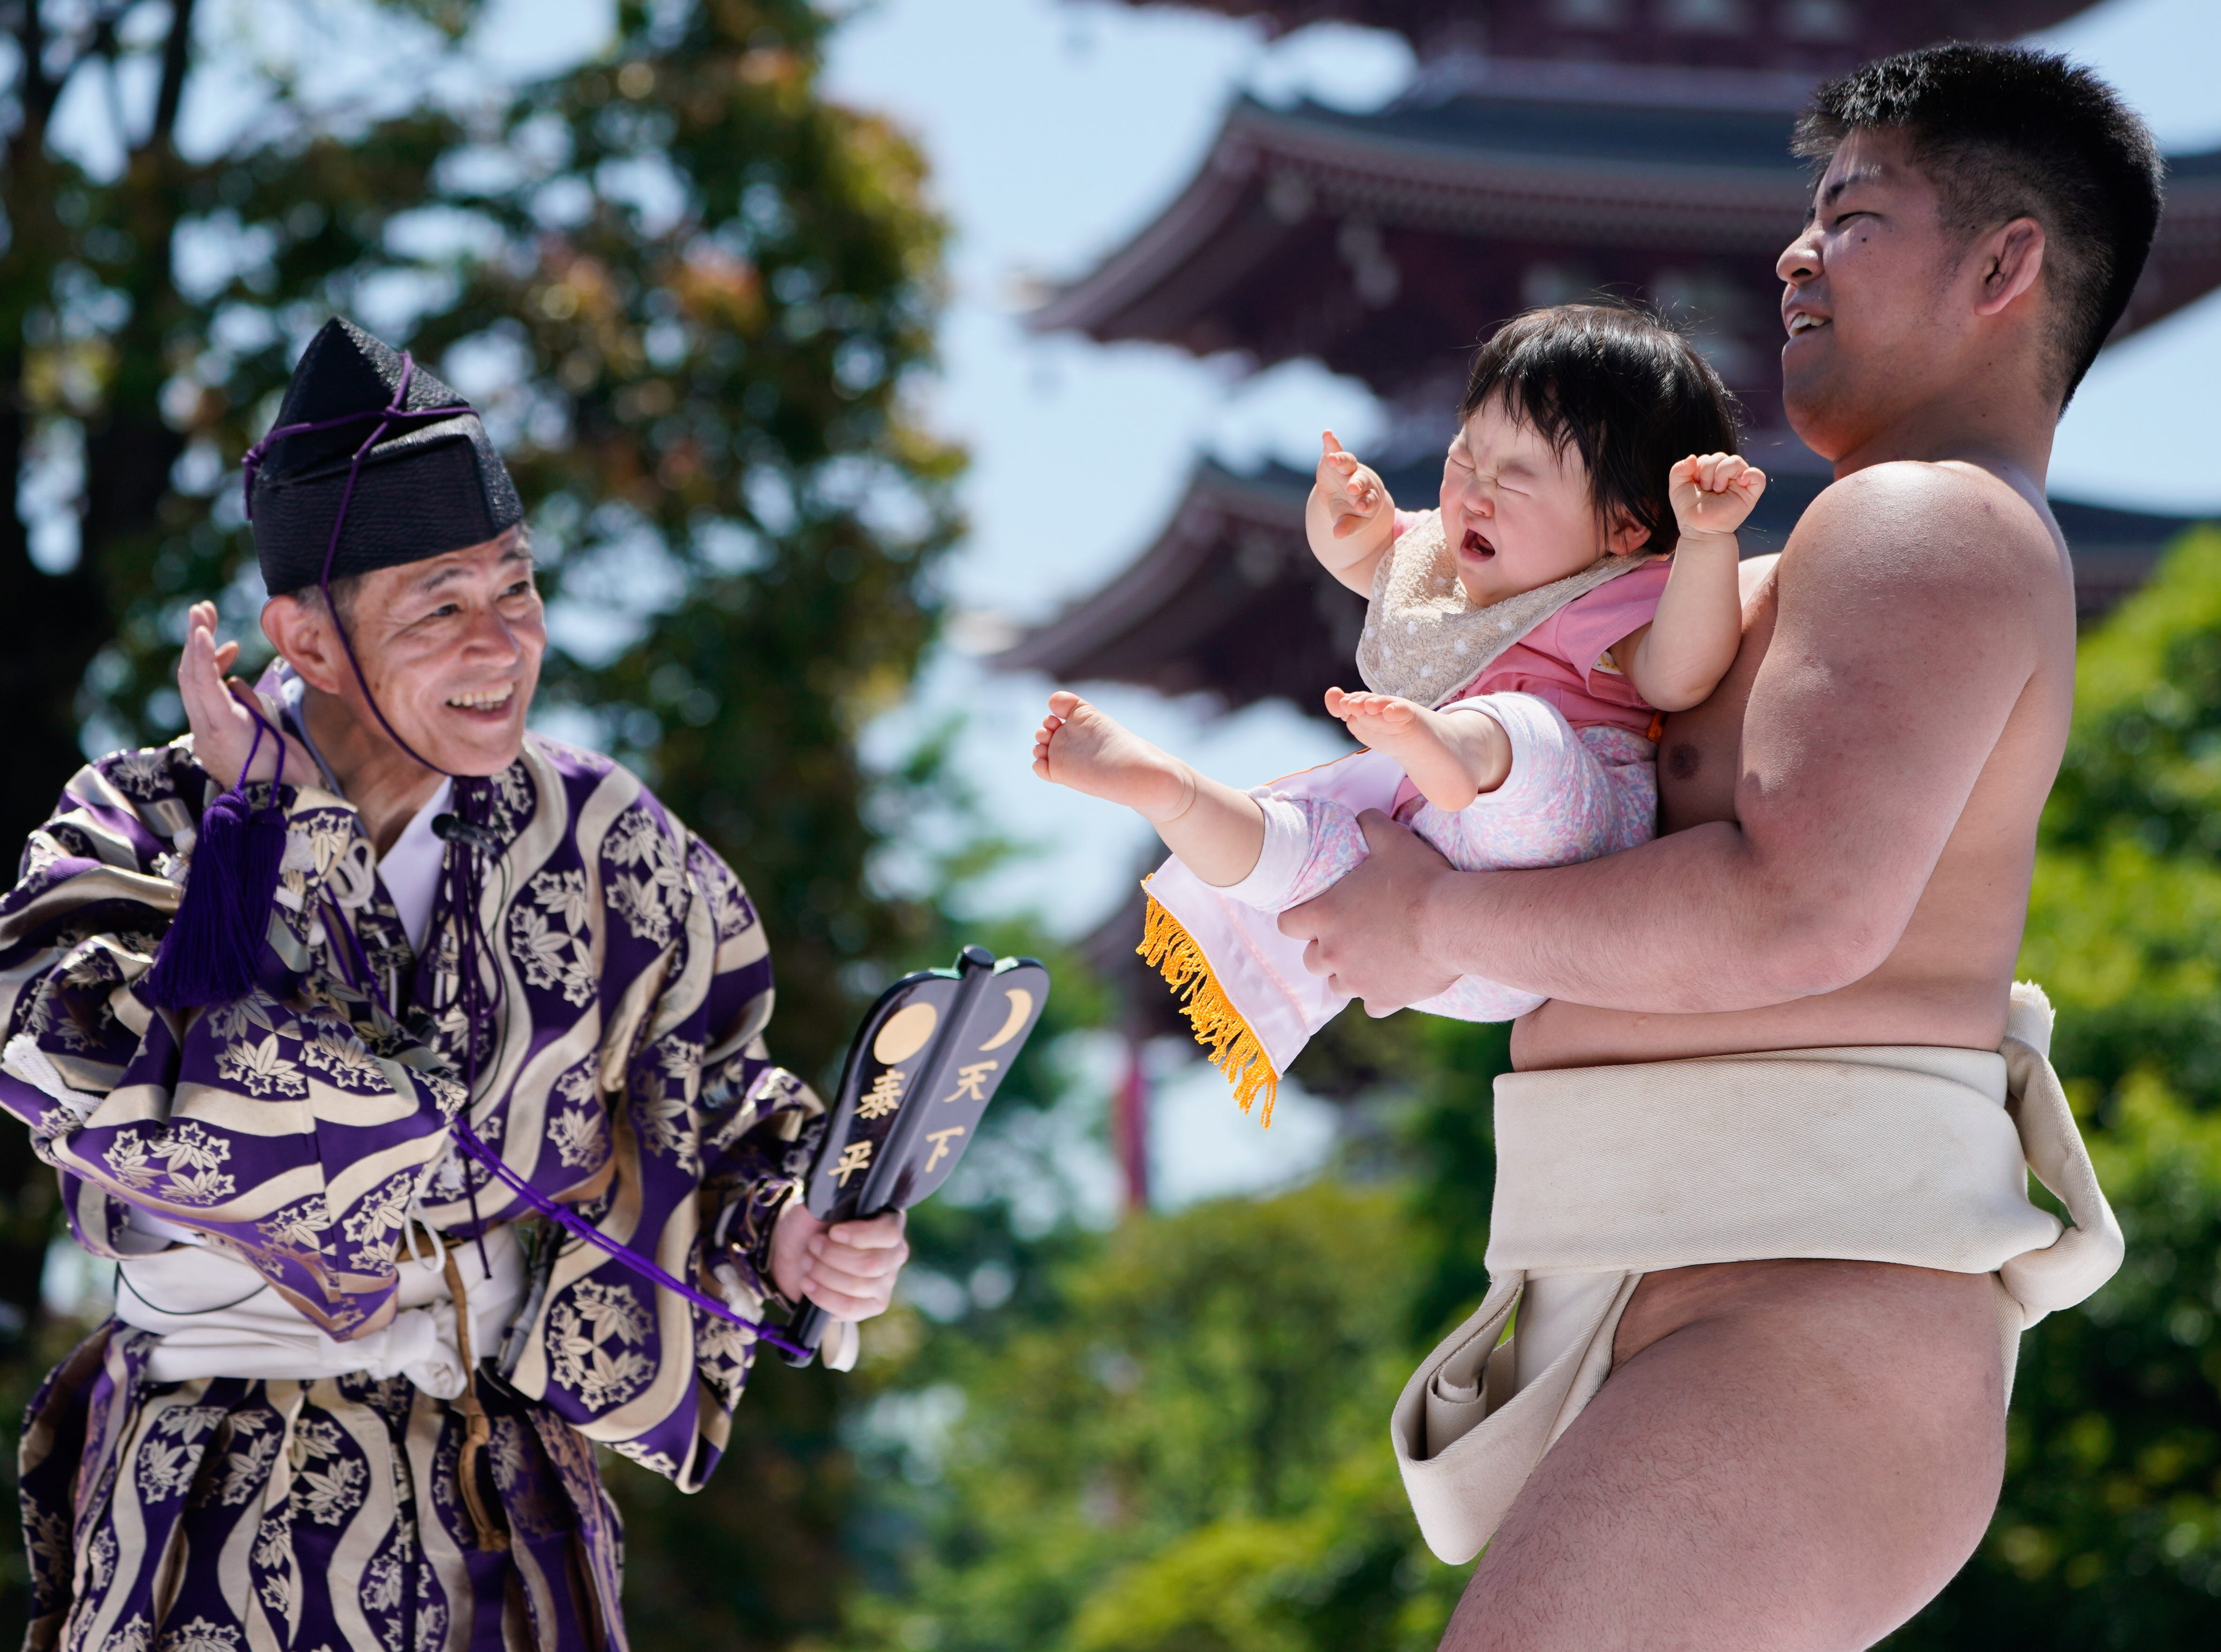 April 28, 2018: A crying baby is held by an amateur sumo wrestler during Nakizumo, a baby crying contest at Sensoji Temple in Tokyo's Asakusa district. Some 160 babies participated in the spring event, praying for their good health and growth. The baby who begins to cry first and the loudest is declared the winner.